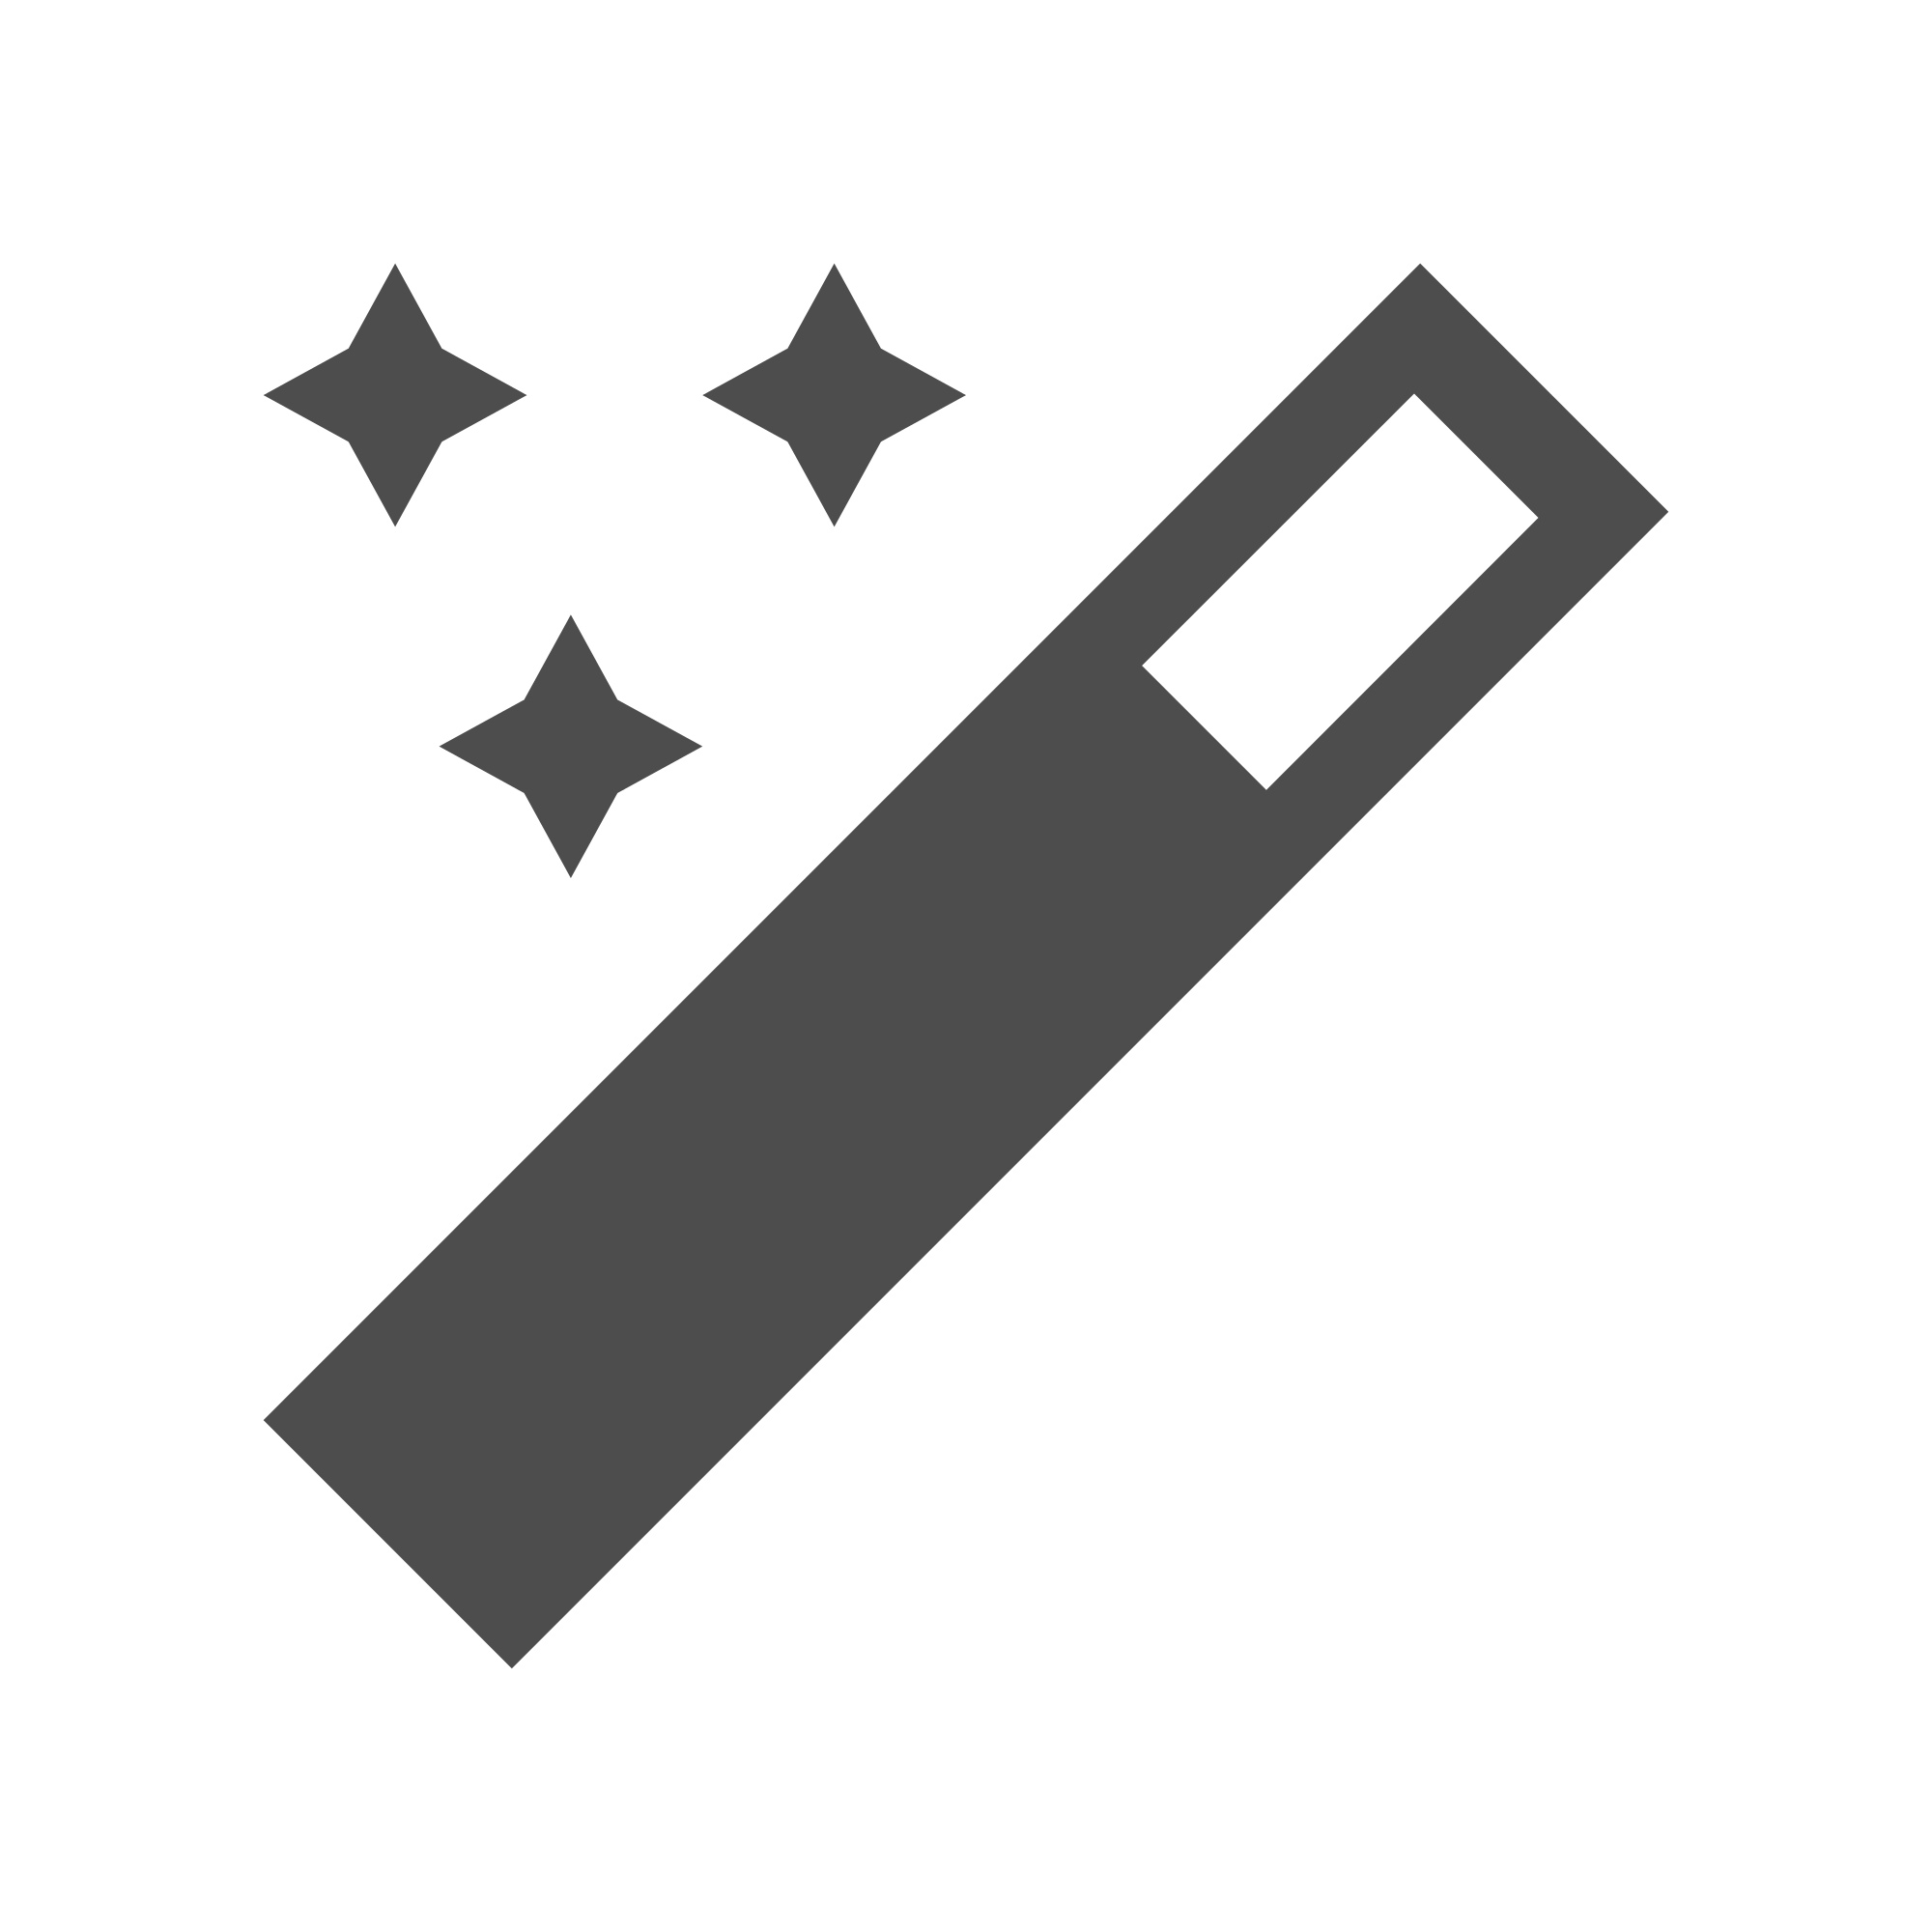 Wizard svg #11, Download drawings